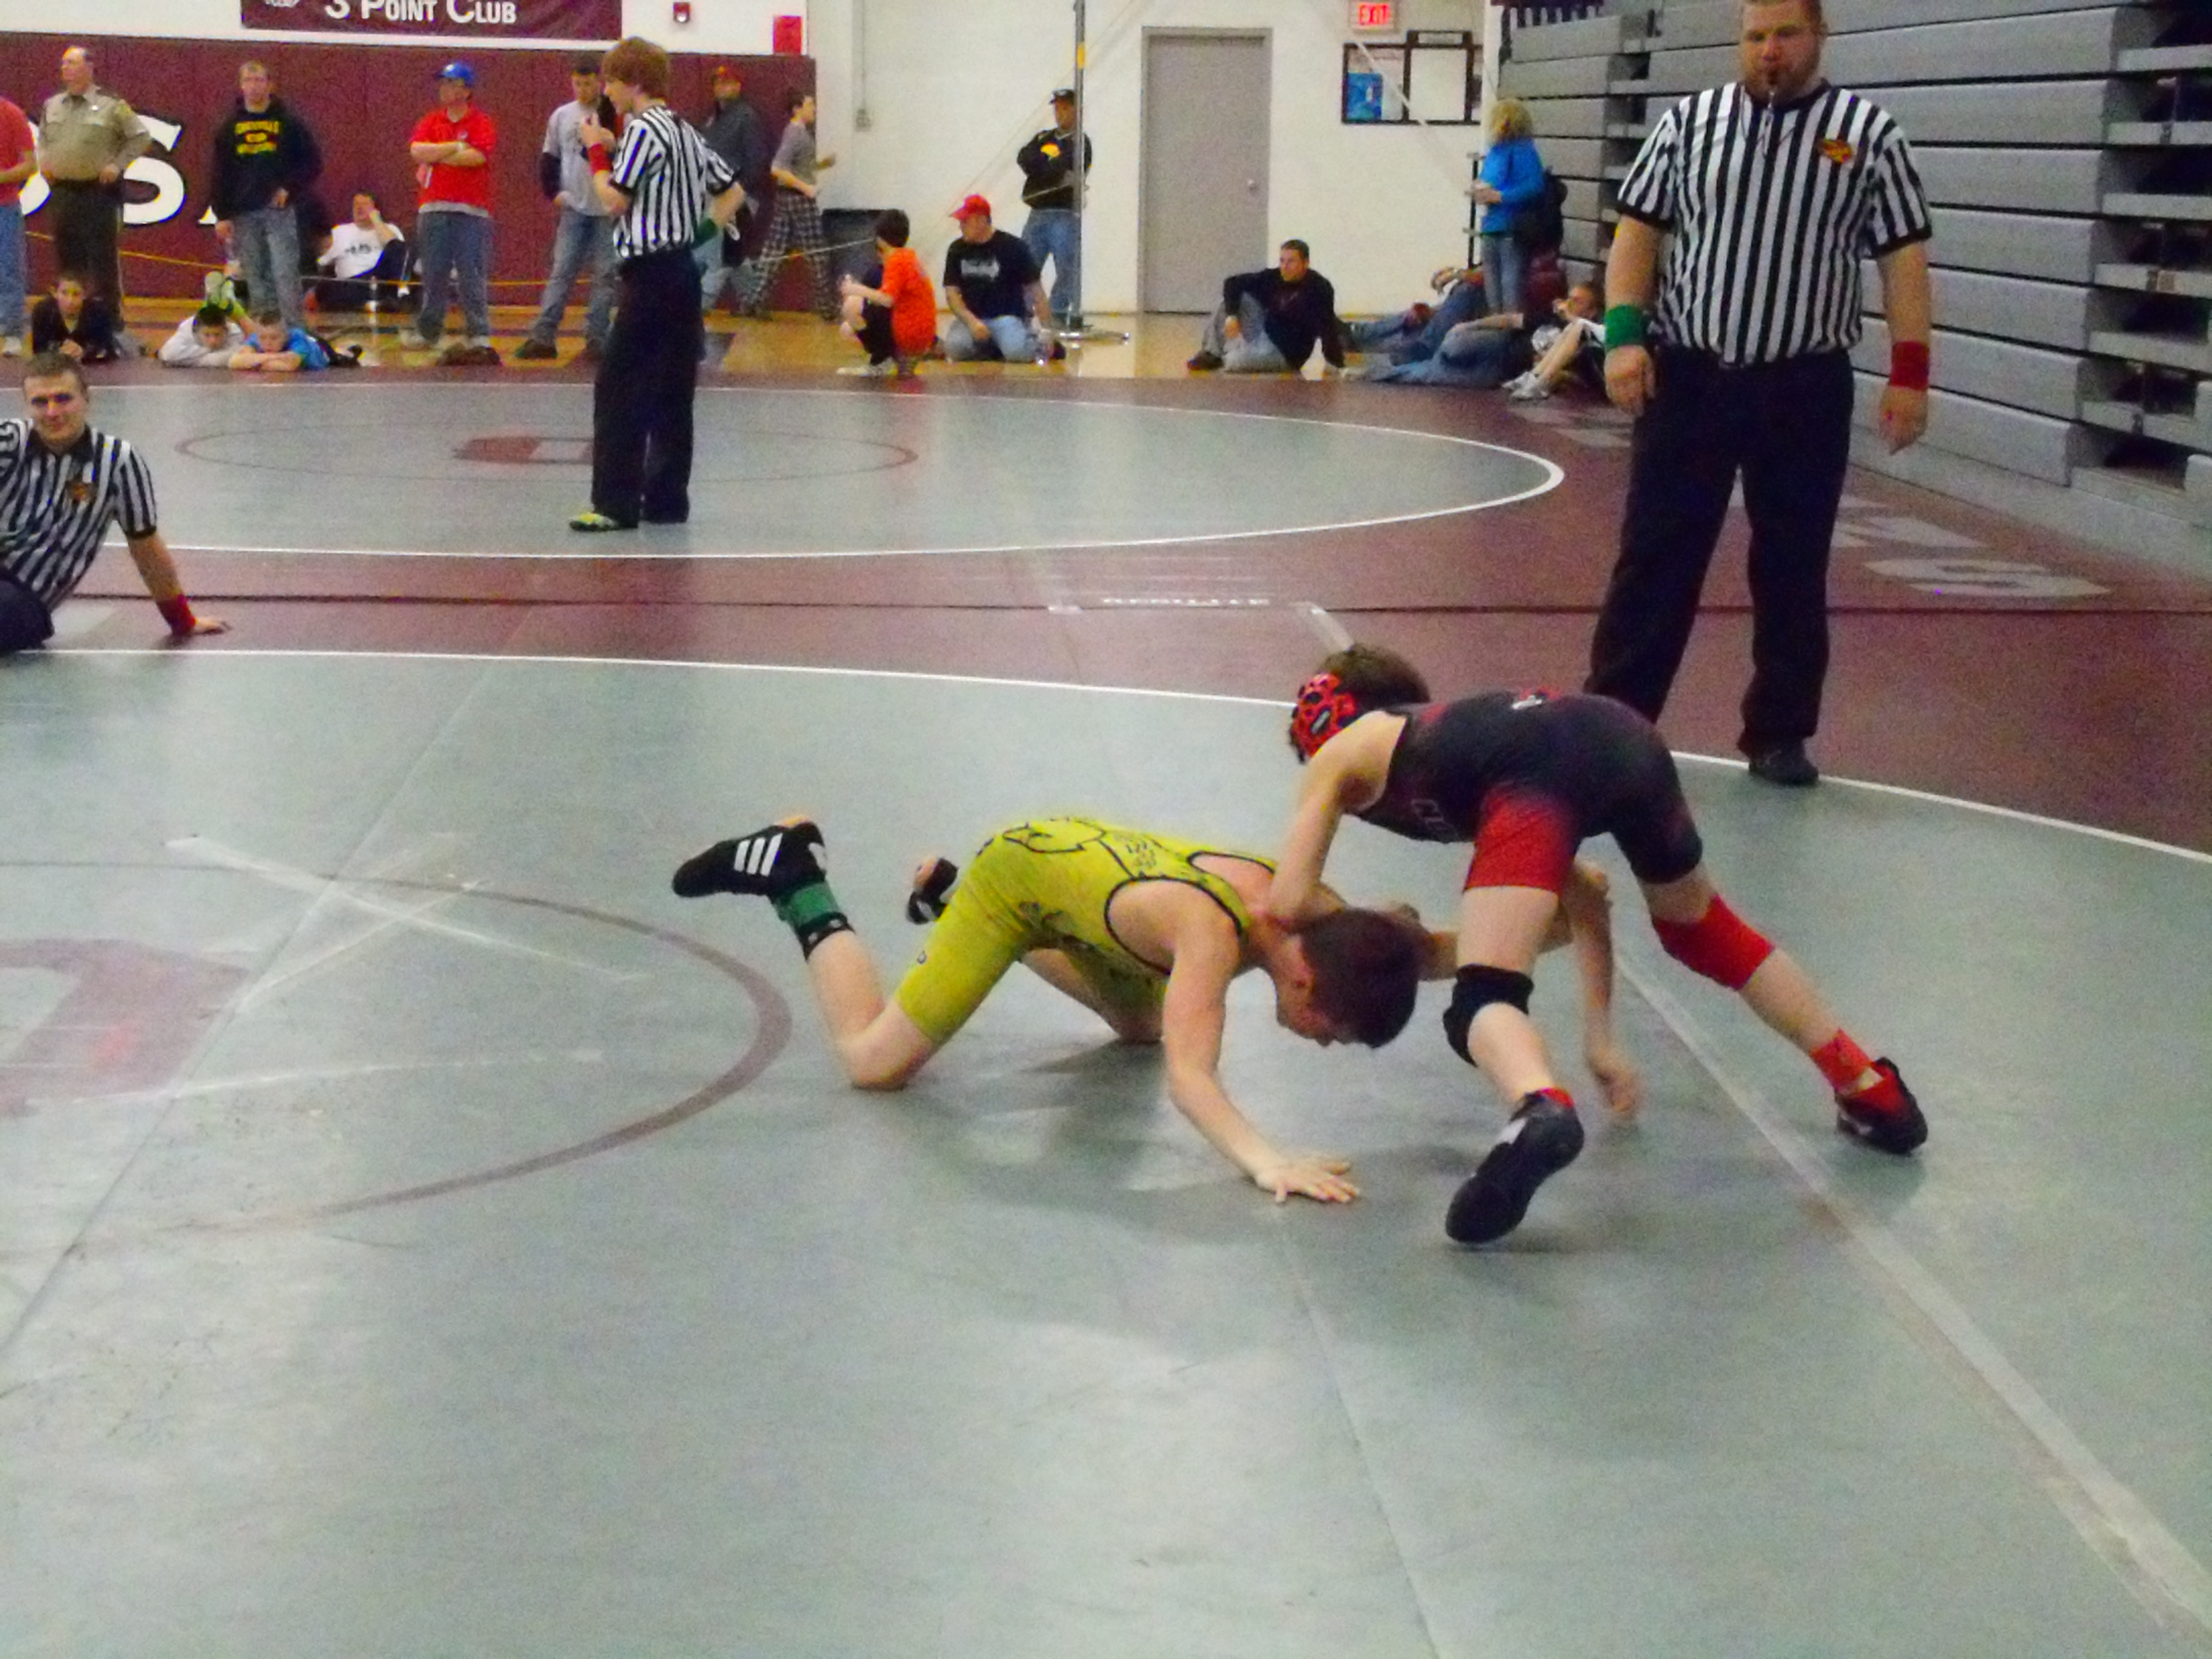 KAOS Gold Wrestling hosted the AAU District 6 wrestling meet on Saturday, March 12th